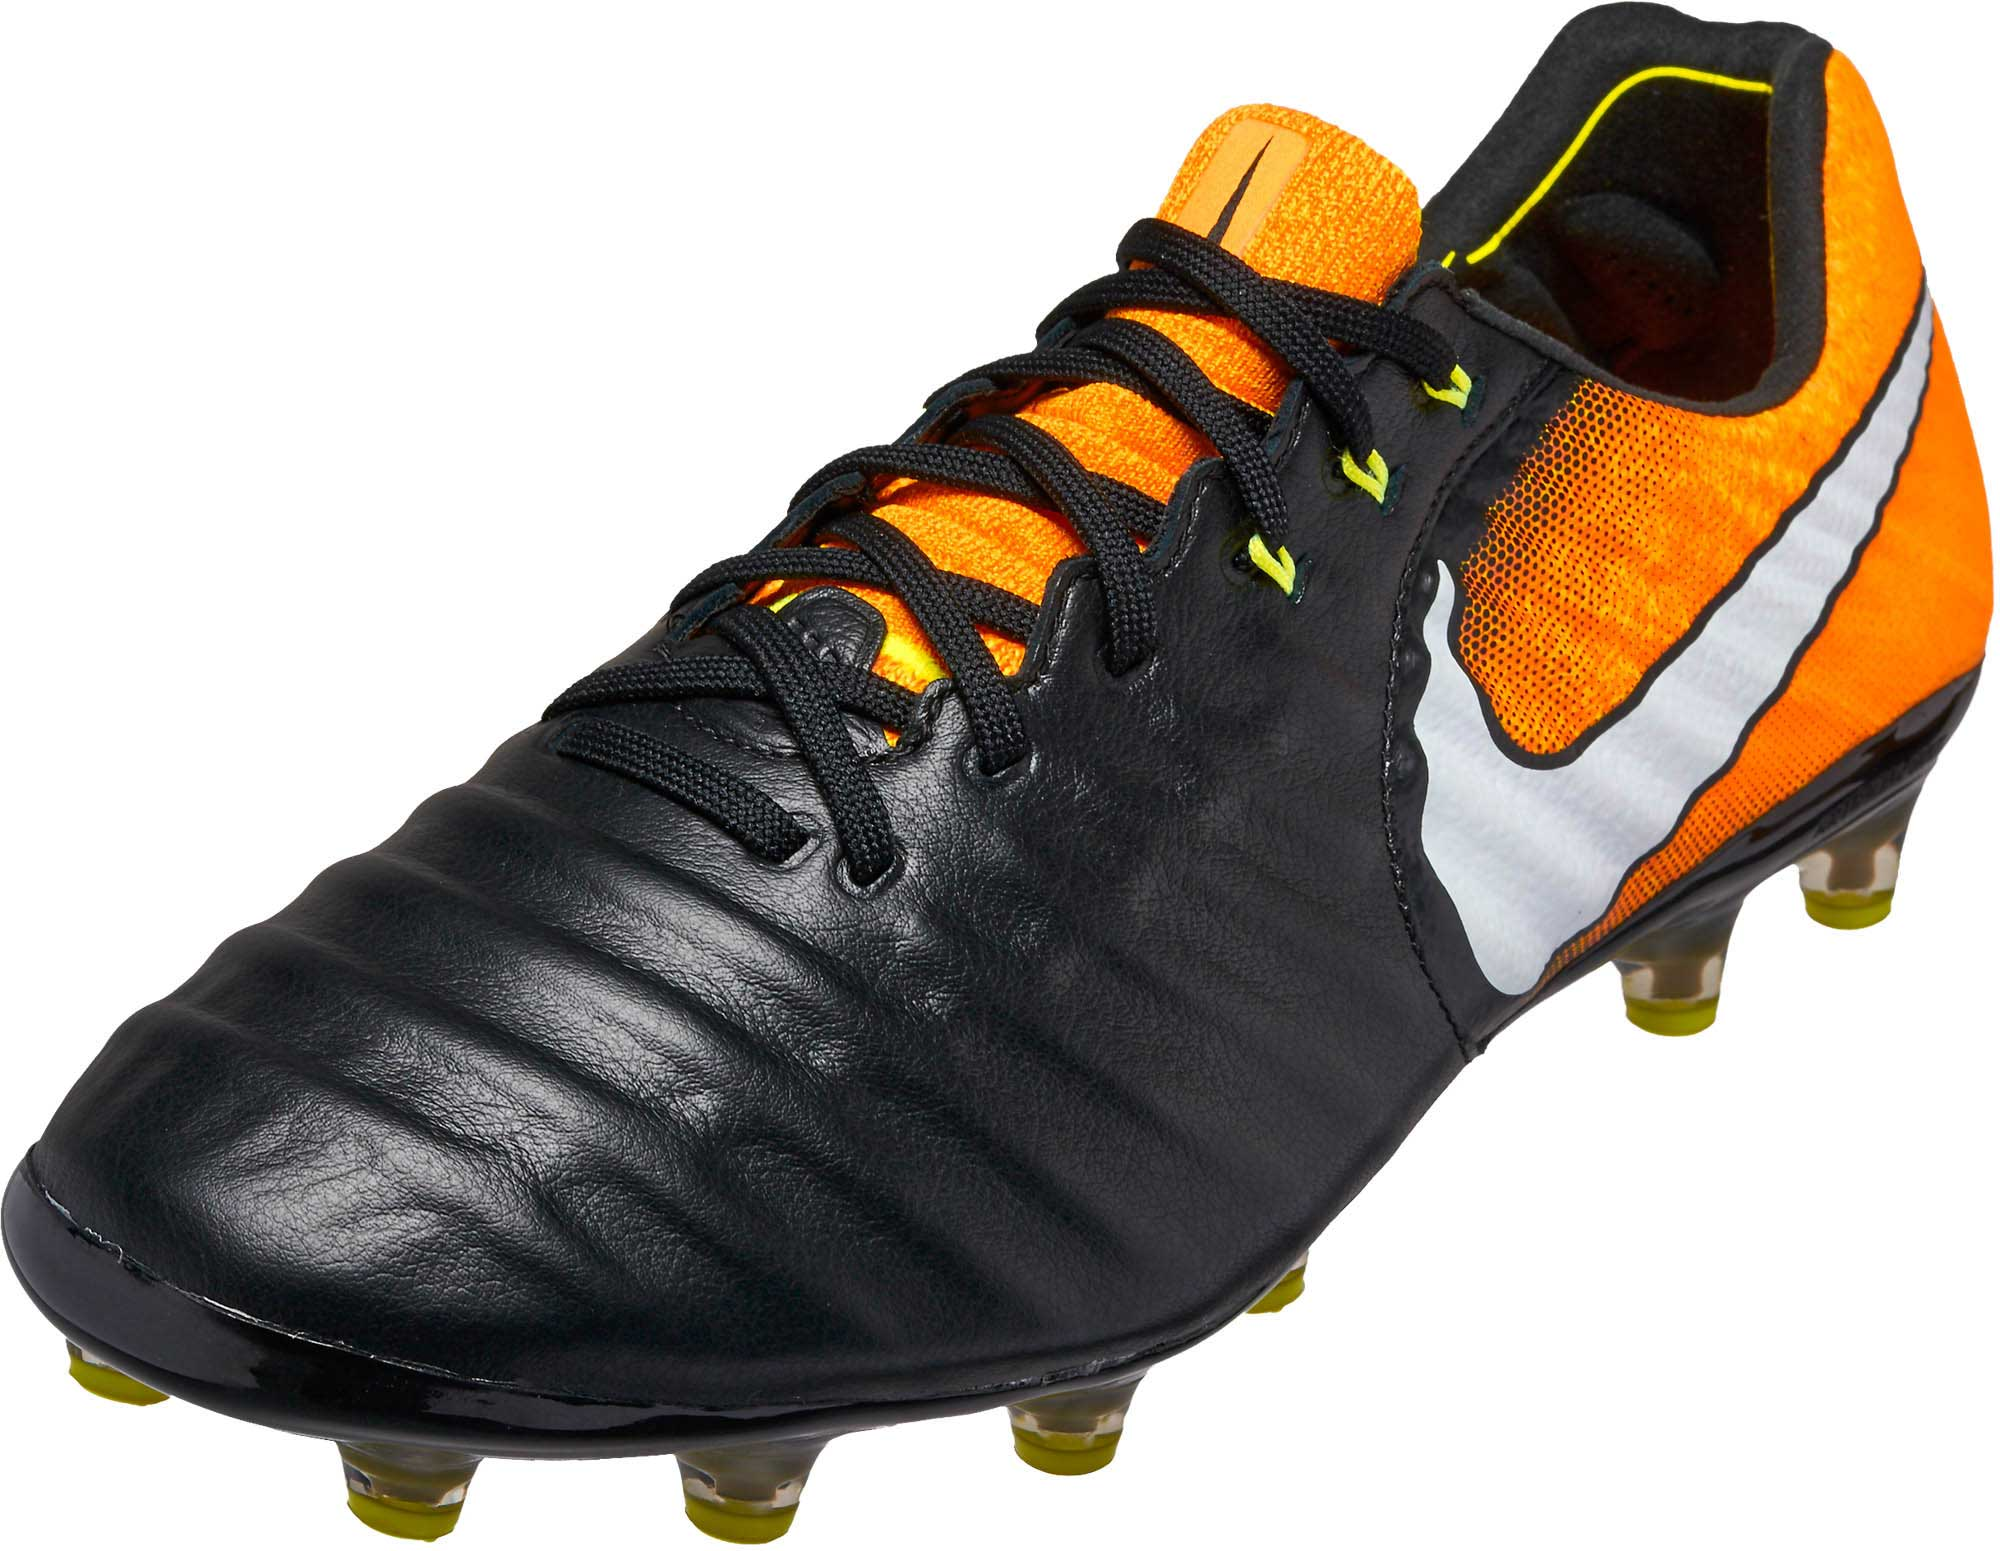 nike tiempo legend ag for sale on sale   OFF68% Discounts 67176892c